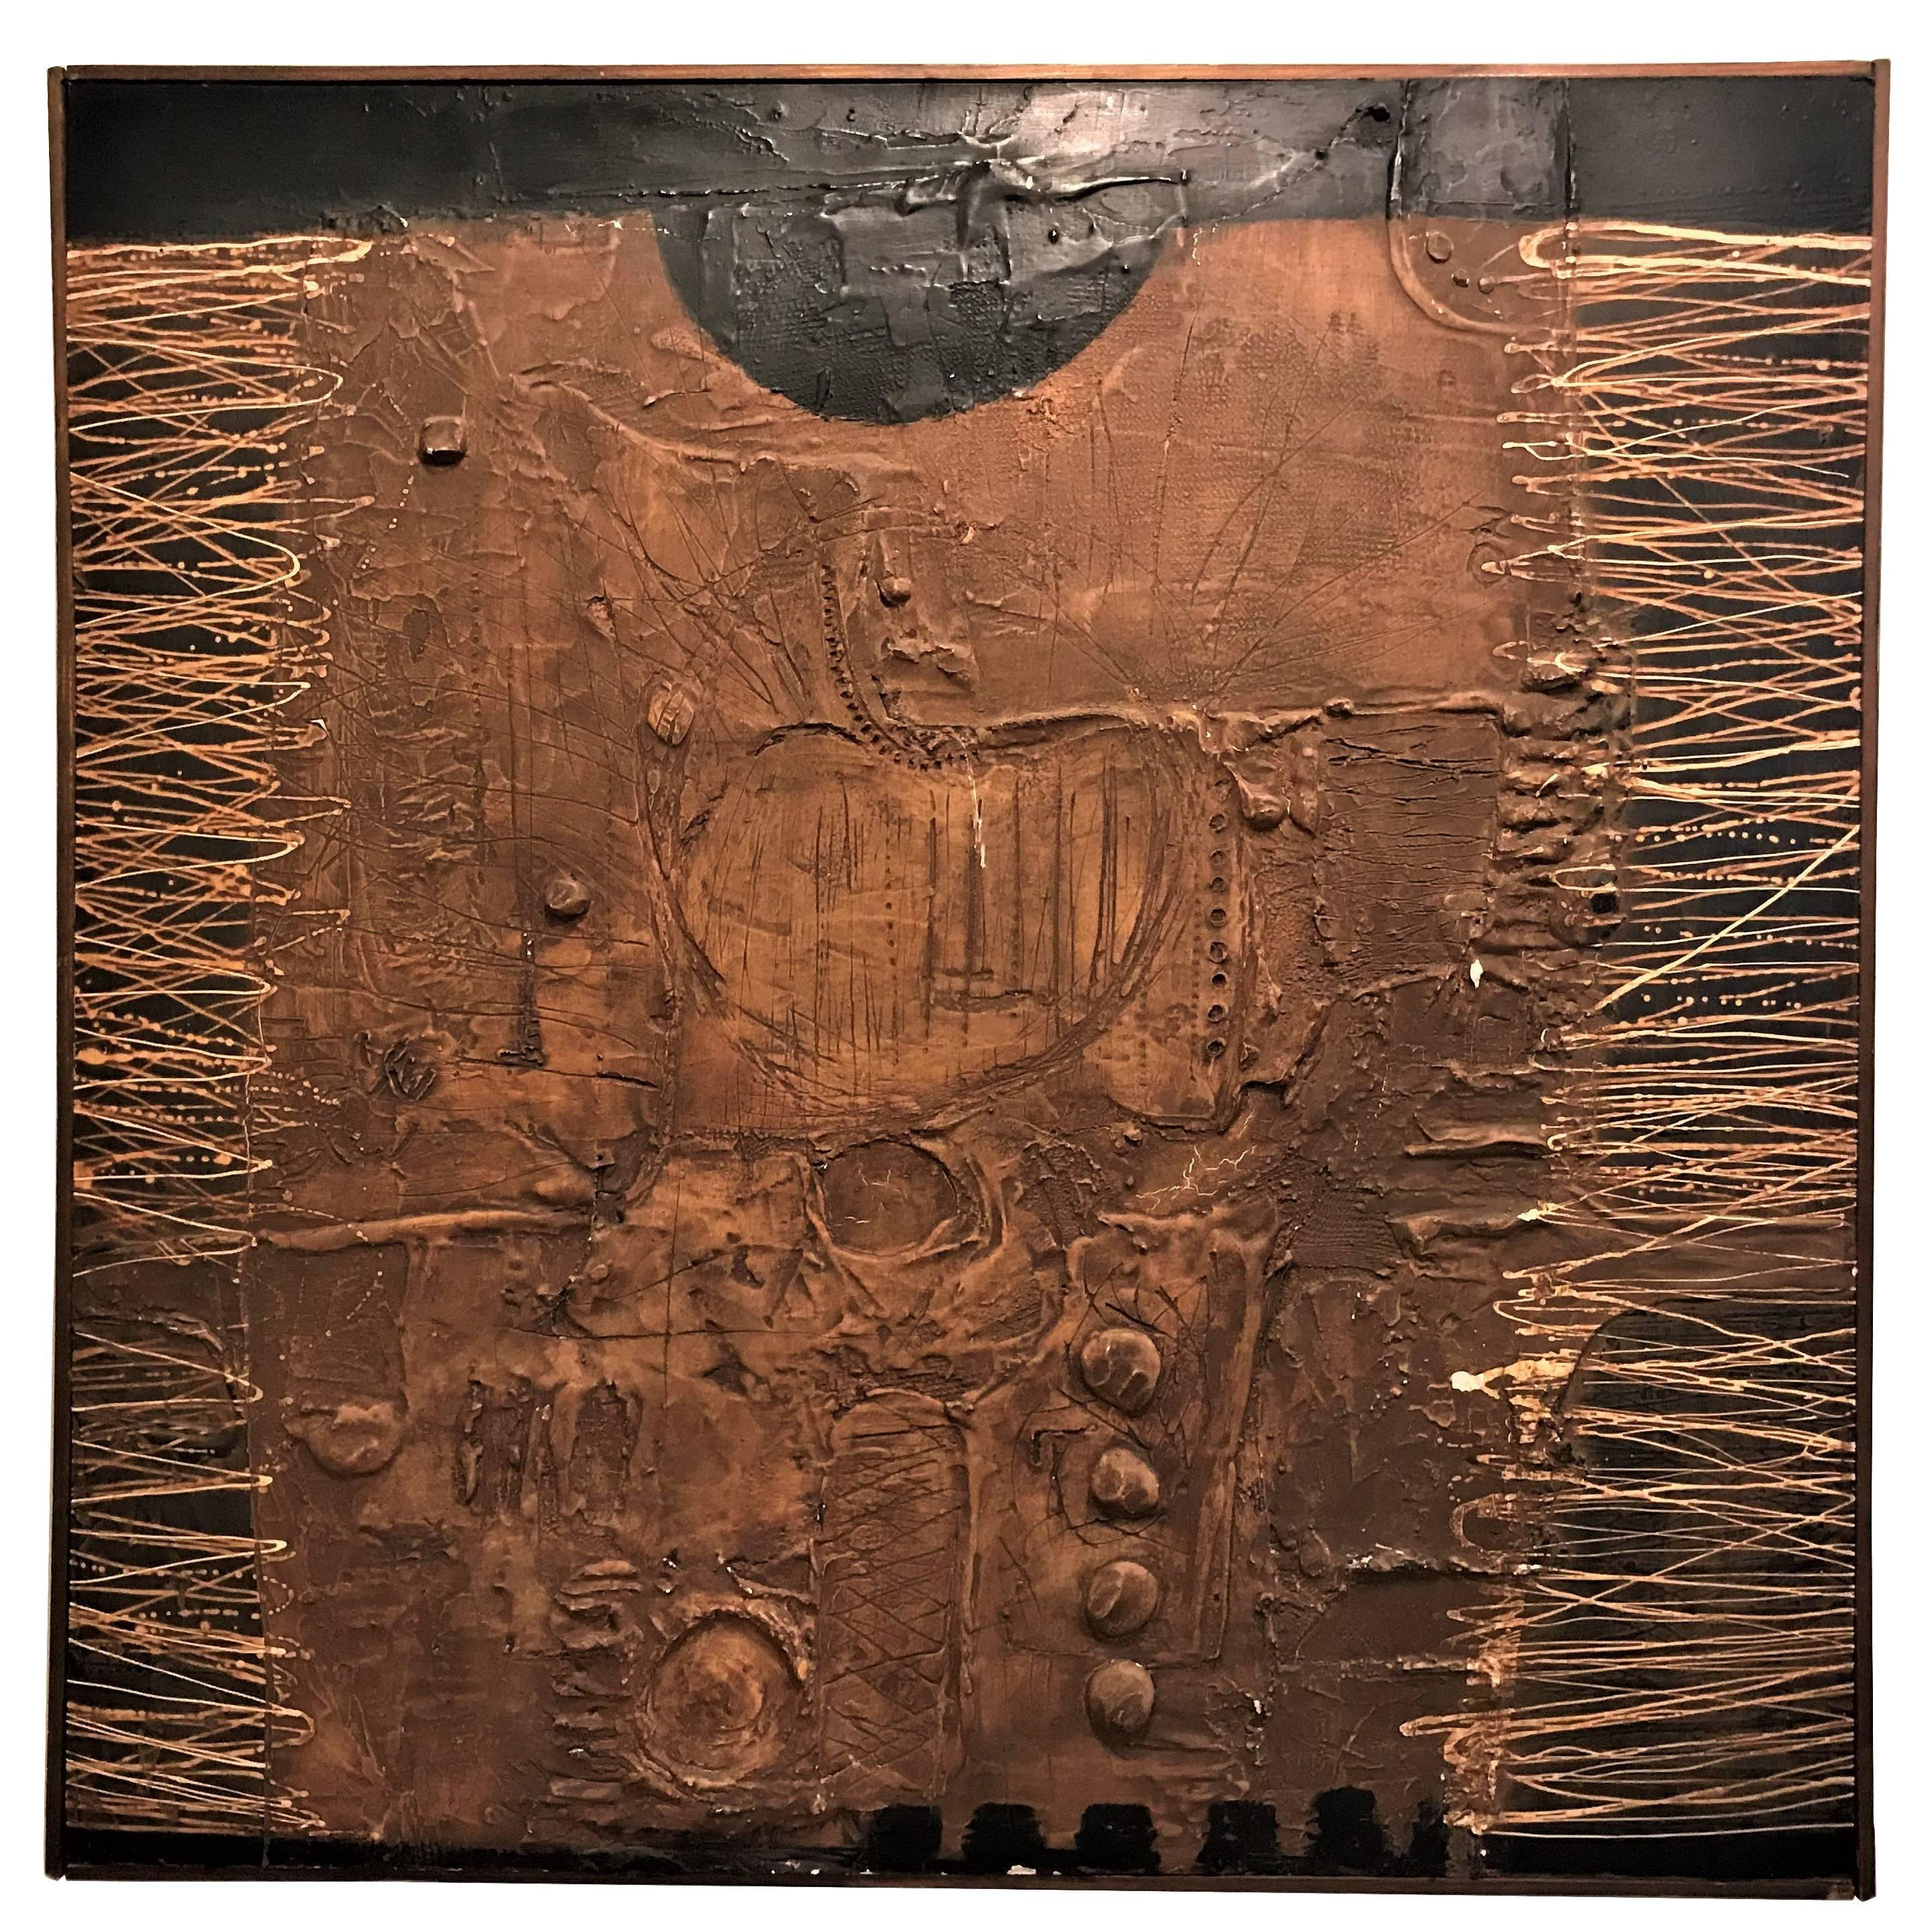 MCM Fine Abstract Oil on Board Signed by Michels Dated 1961, 'Copper Bleeding'